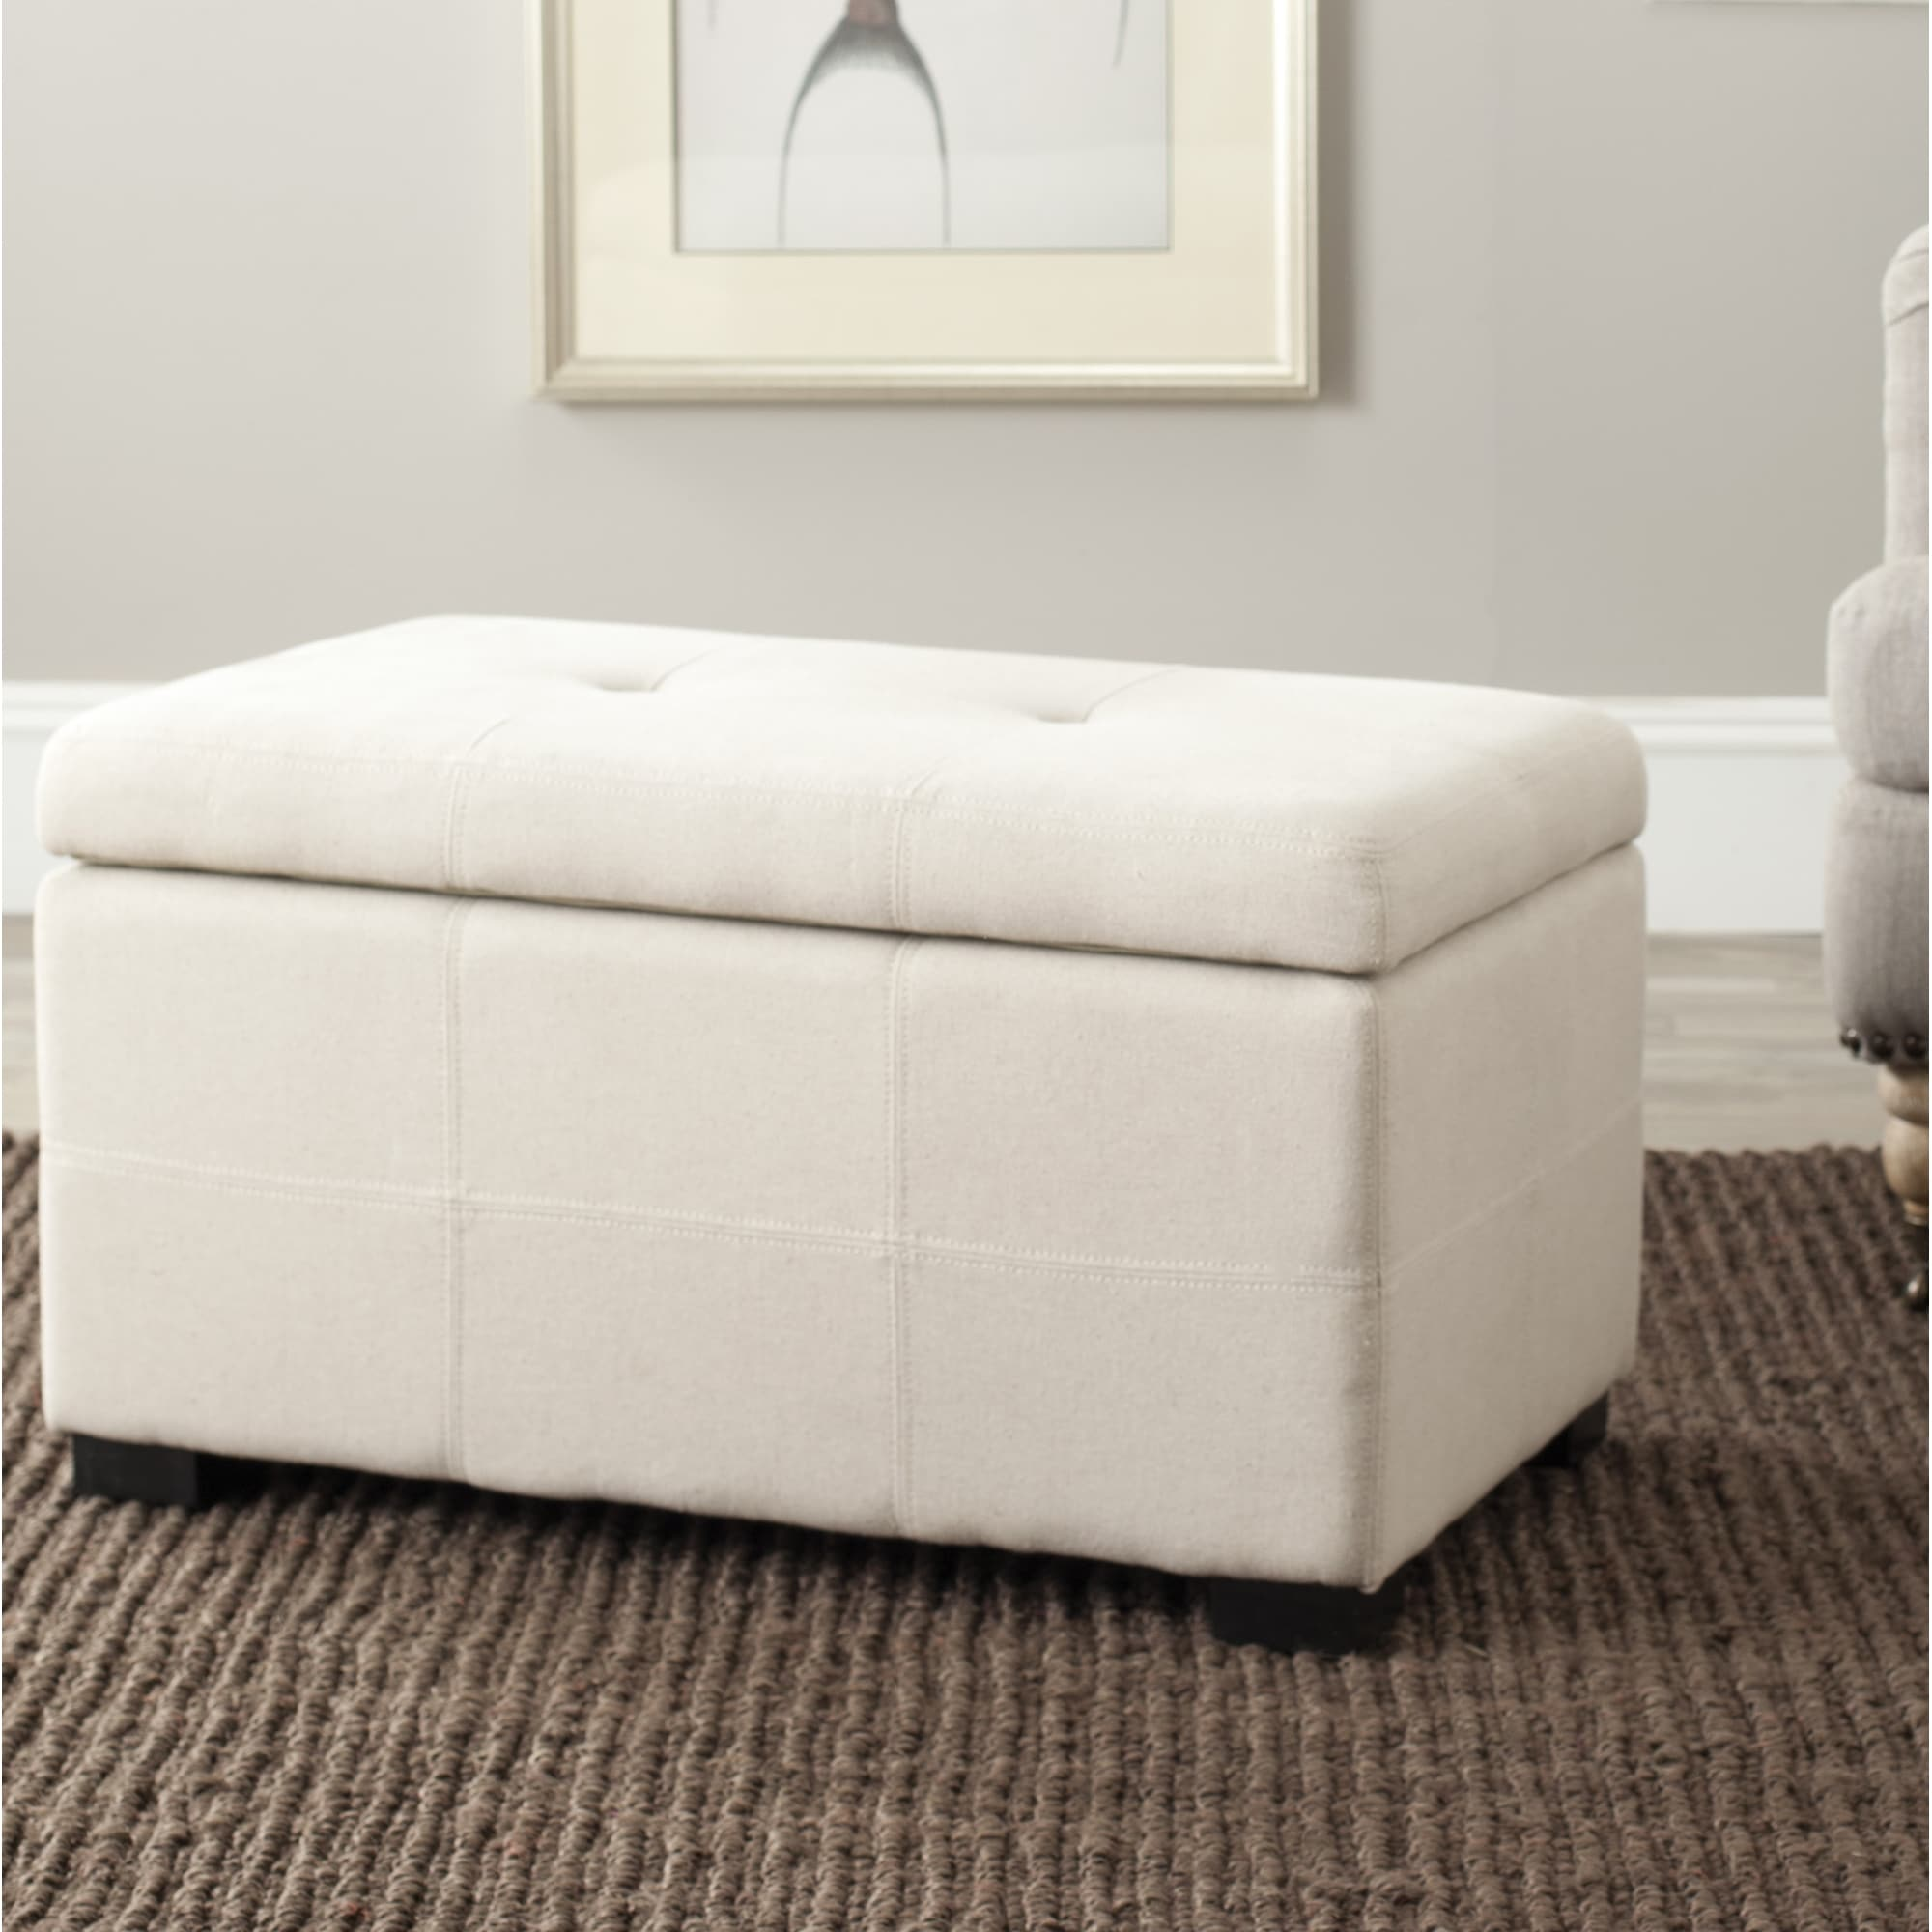 Safavieh Maiden Tufted Beige Linen Small Indoor Storage B...